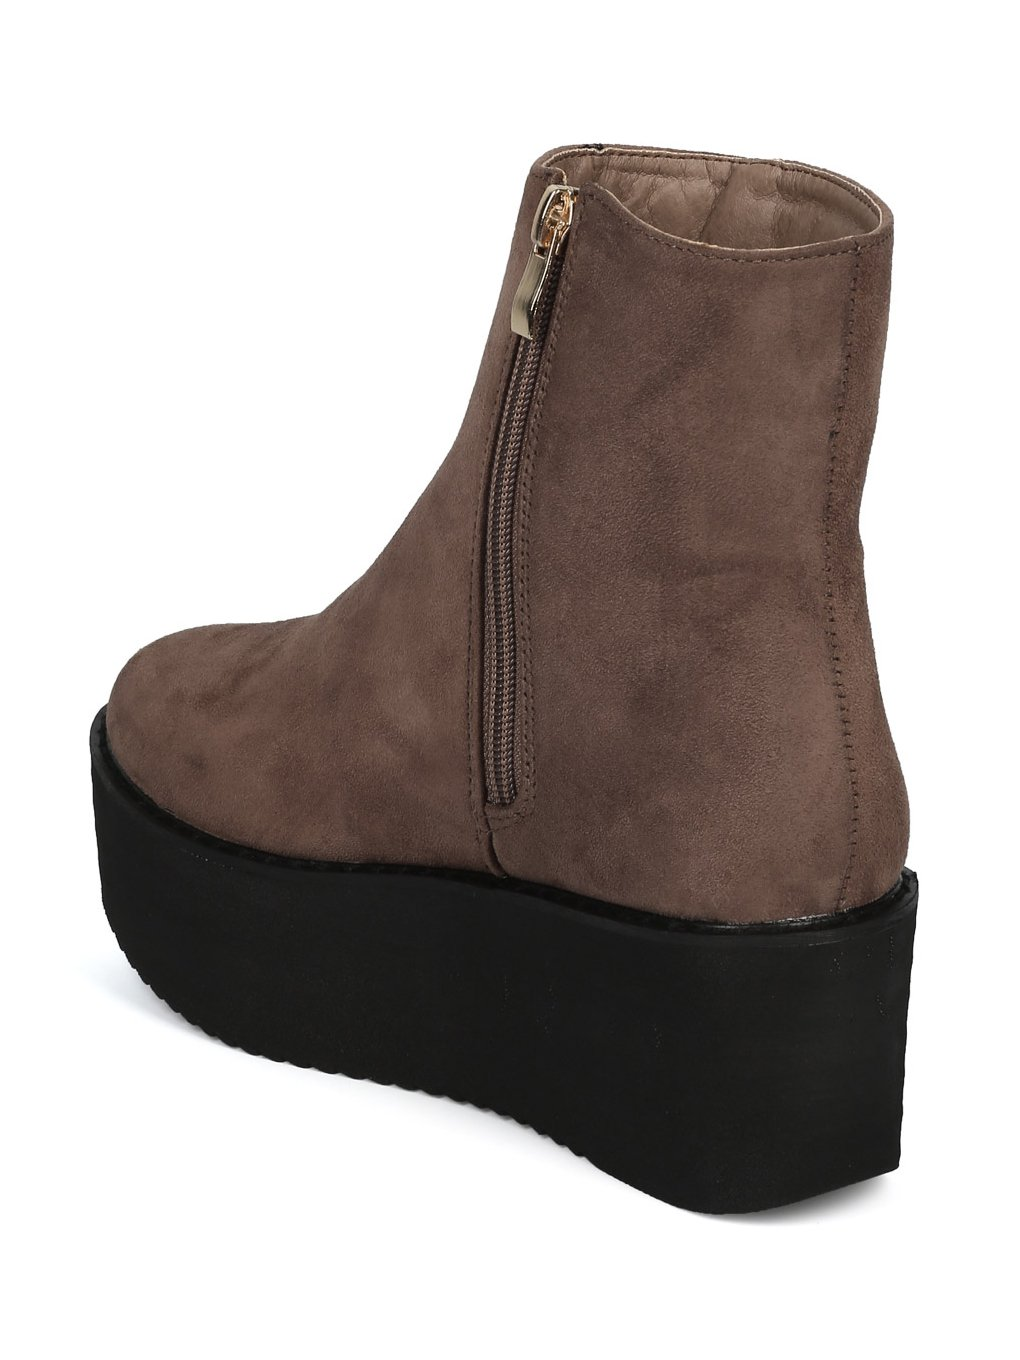 Indulge Hebe-I Women Round Toe Platform Creeper Ankle Bootie HE66 - Taupe Faux Suede (Size: 7.0) by Indulge (Image #2)